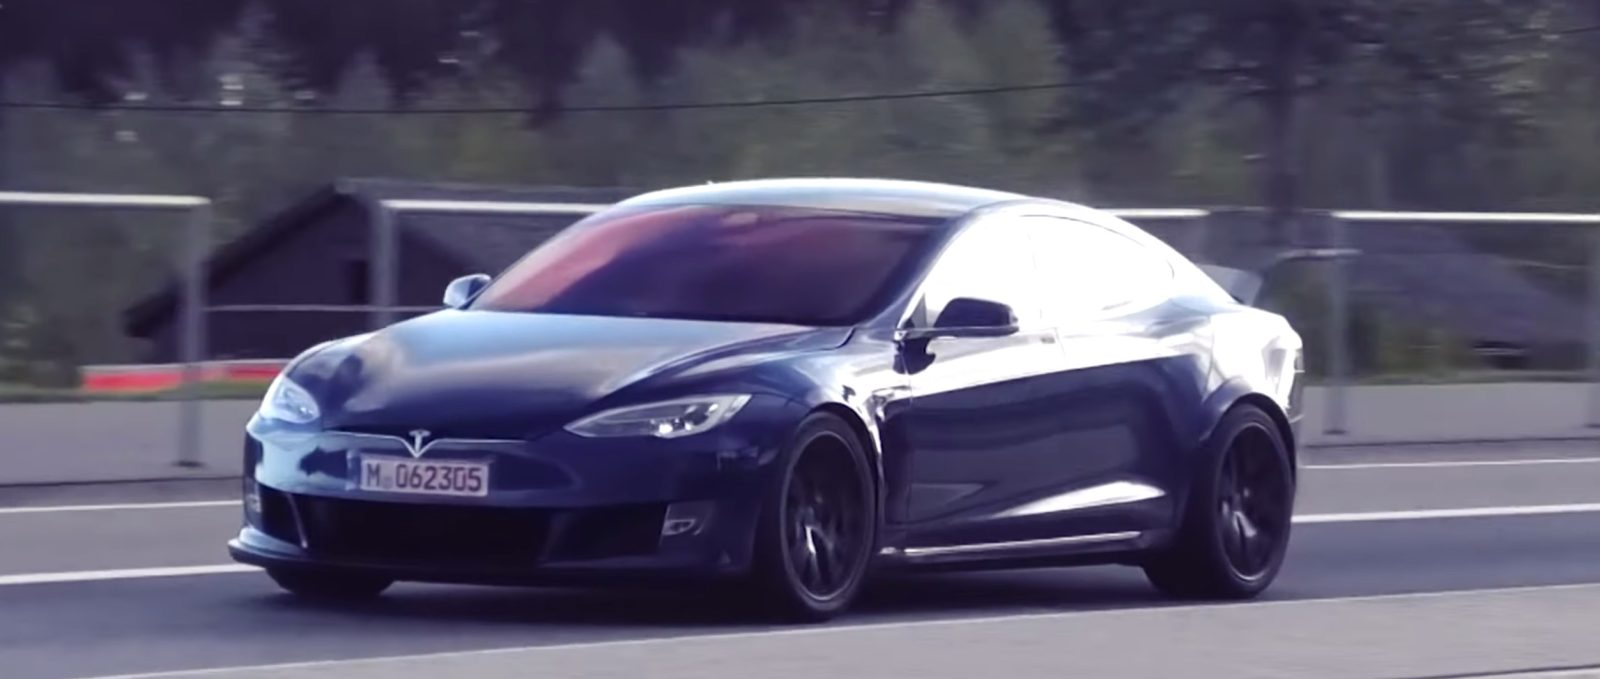 Tesla achieves record time at Nürburgring, beats Porsche Taycan, but likely still unofficial